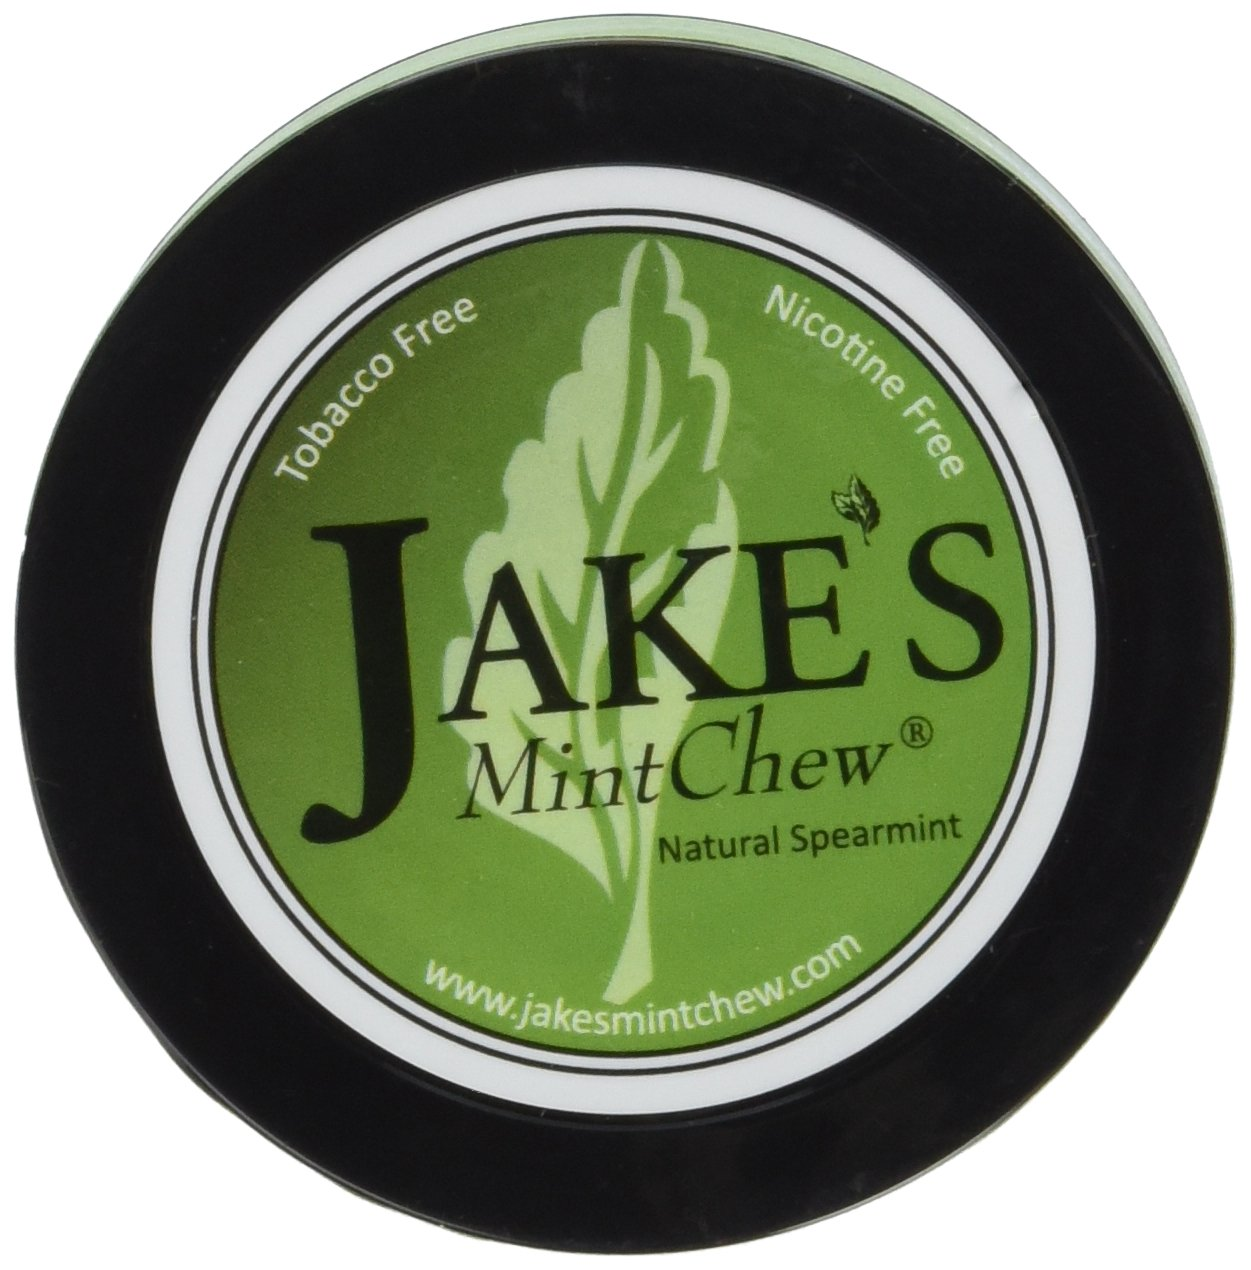 Jake's Mint Chew - Spearmint - 5 pack - Tobacco & Nicotine Free!